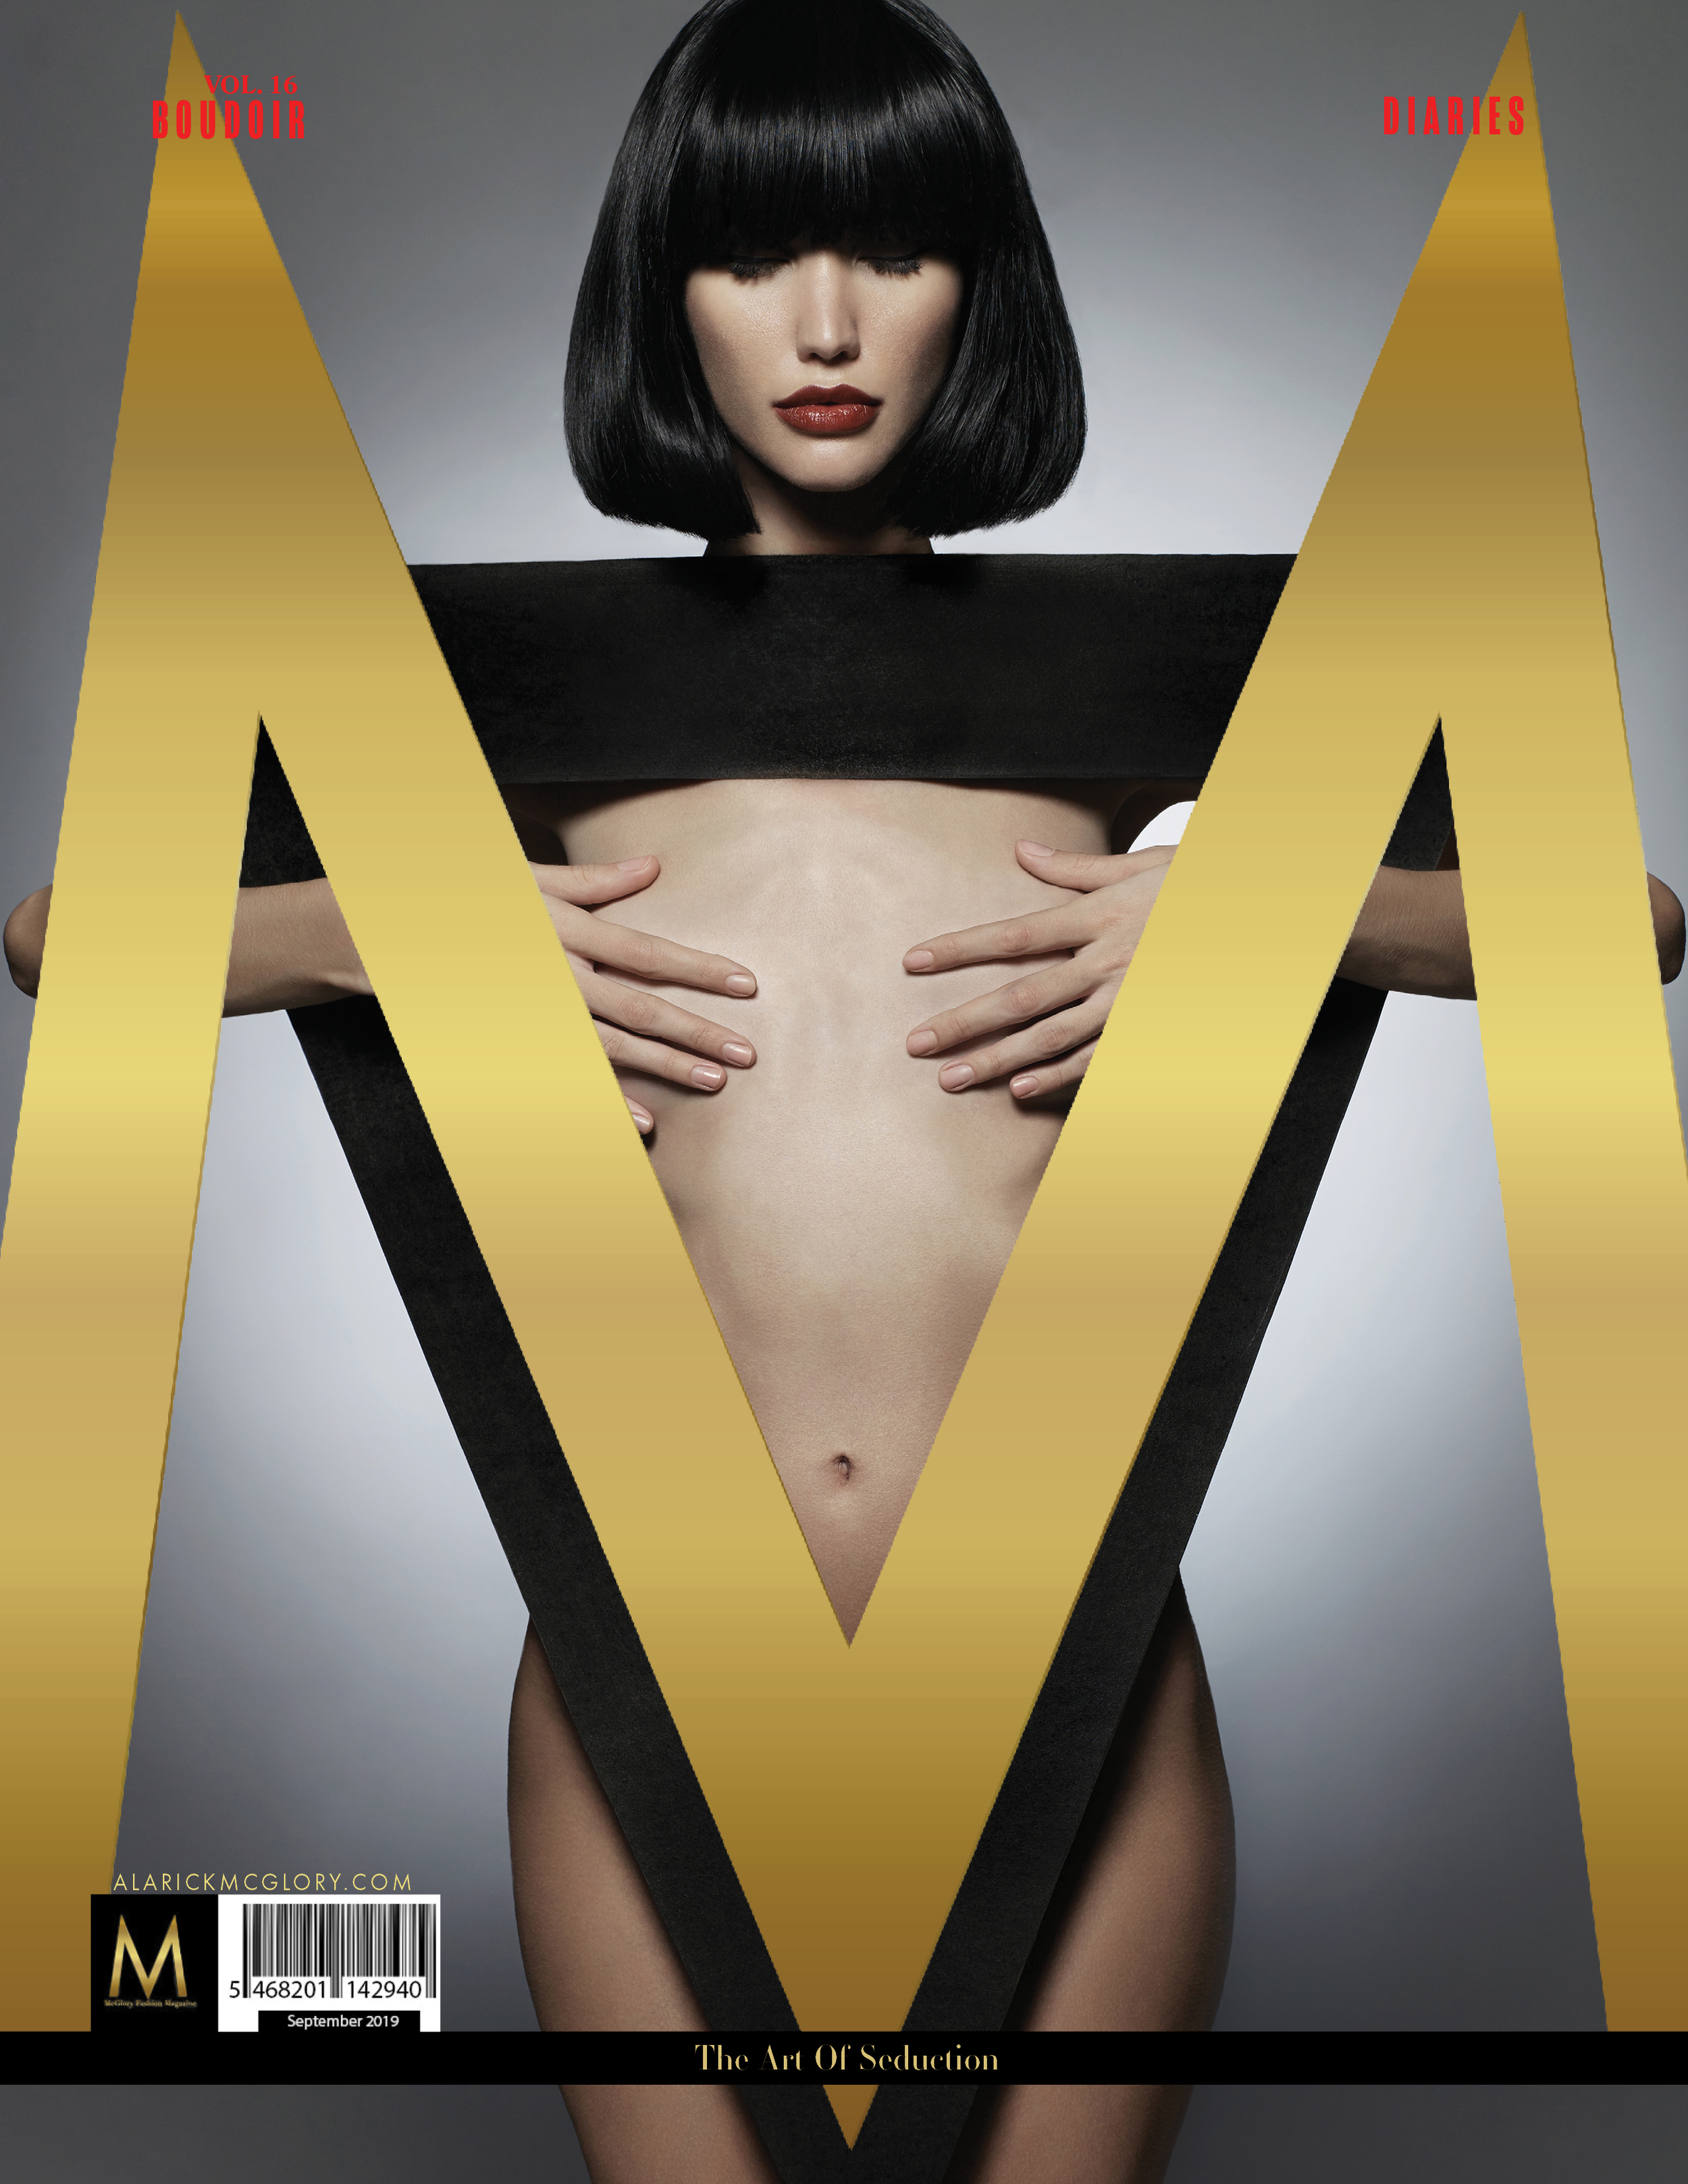 MFM NEW issue 10-106 Part 2 Space 4-4-4-4 VOL 4 SEPTEMBER boudoir.png